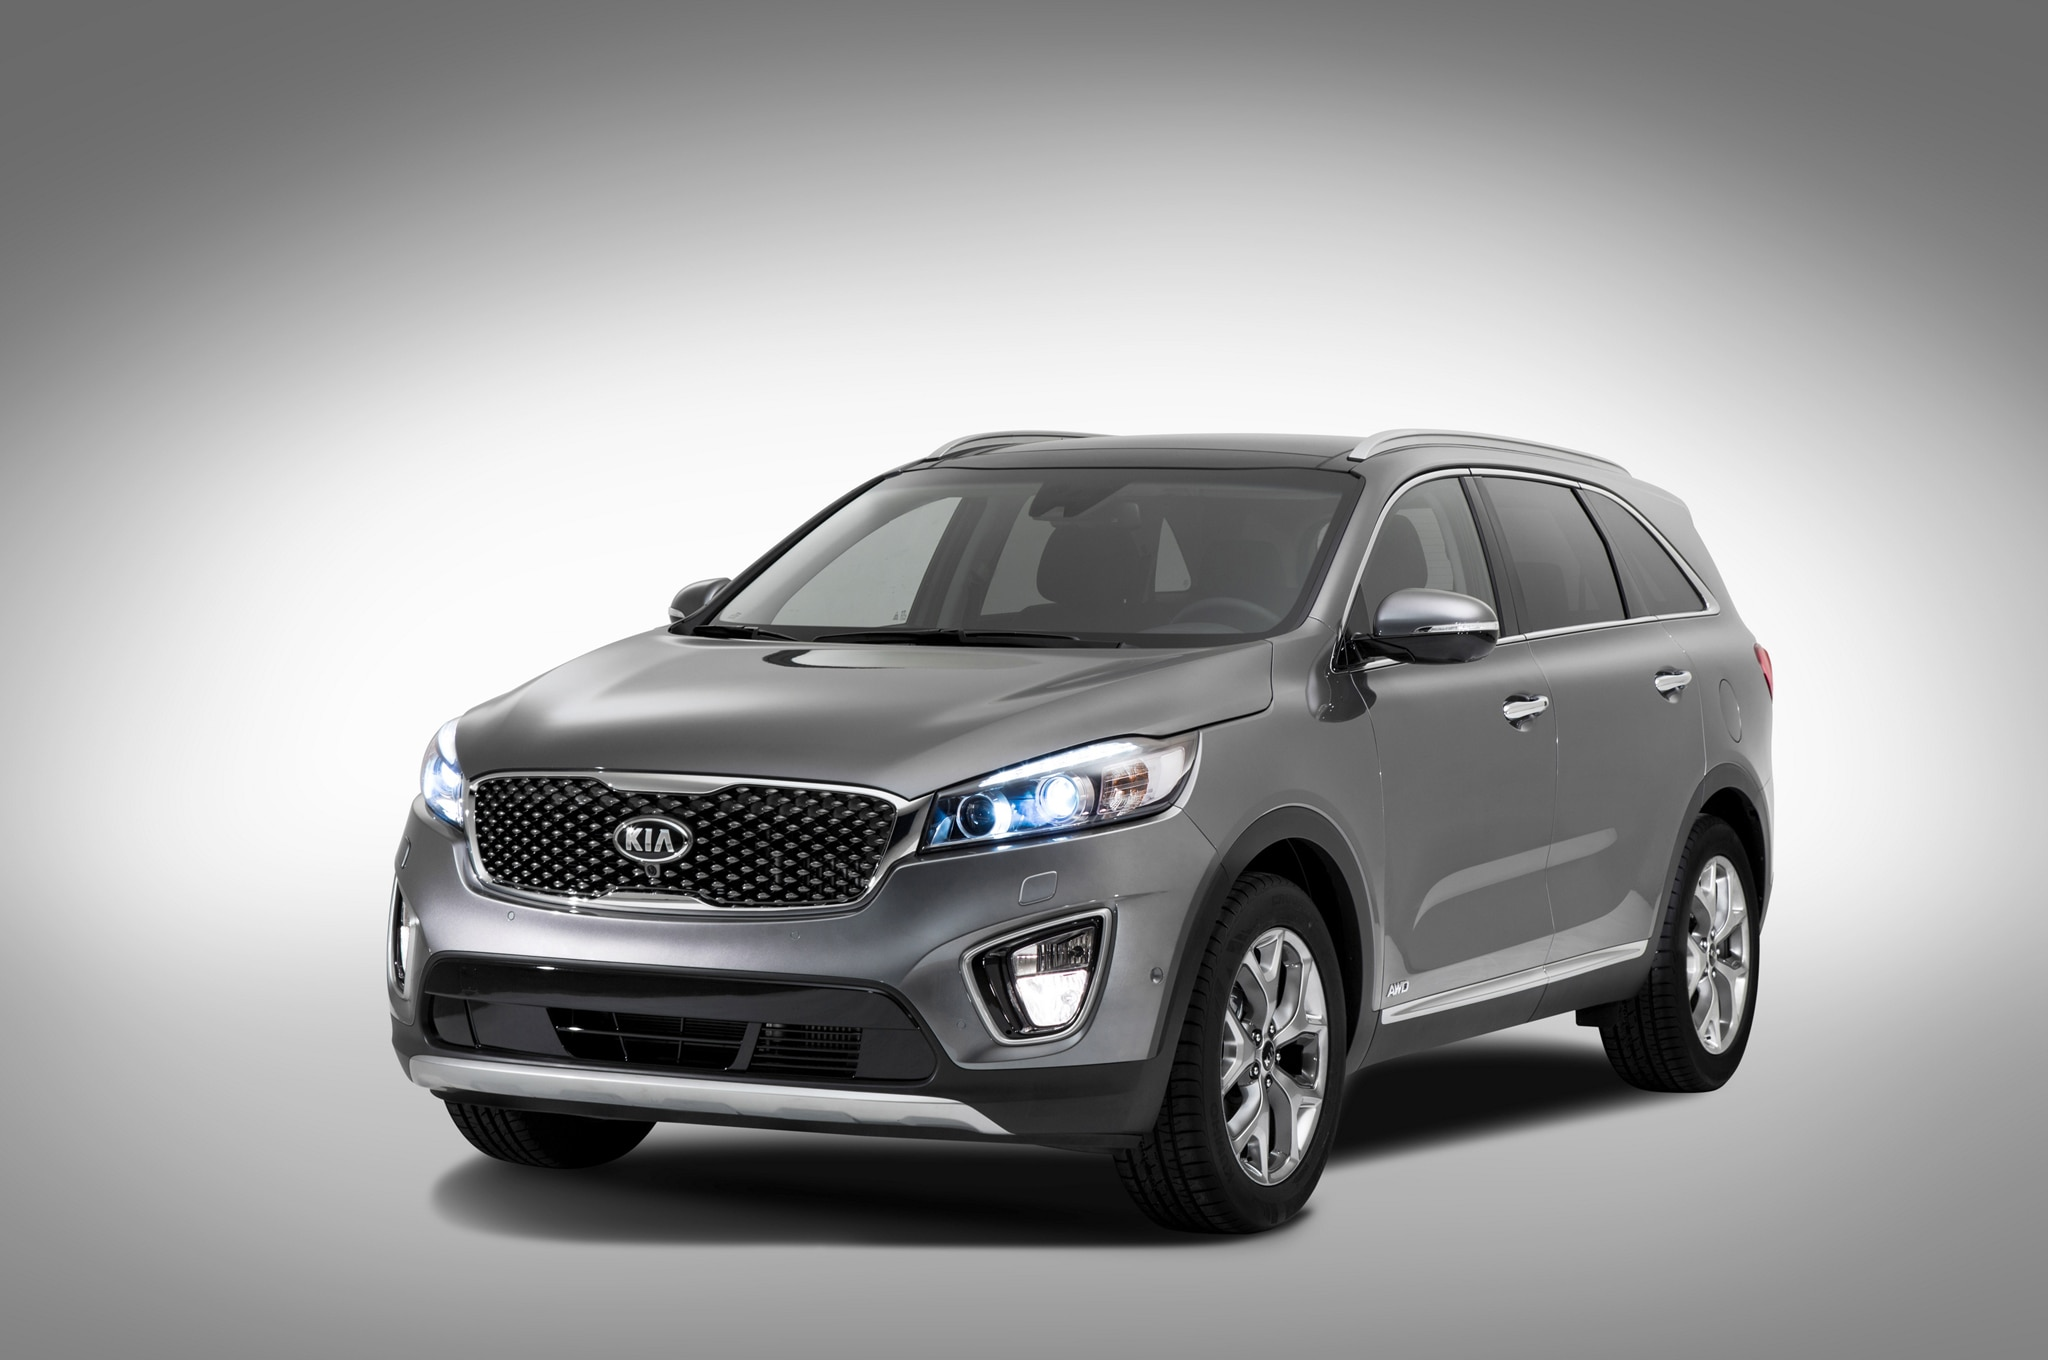 2016 kia sorento revealed with more space updated styling. Black Bedroom Furniture Sets. Home Design Ideas